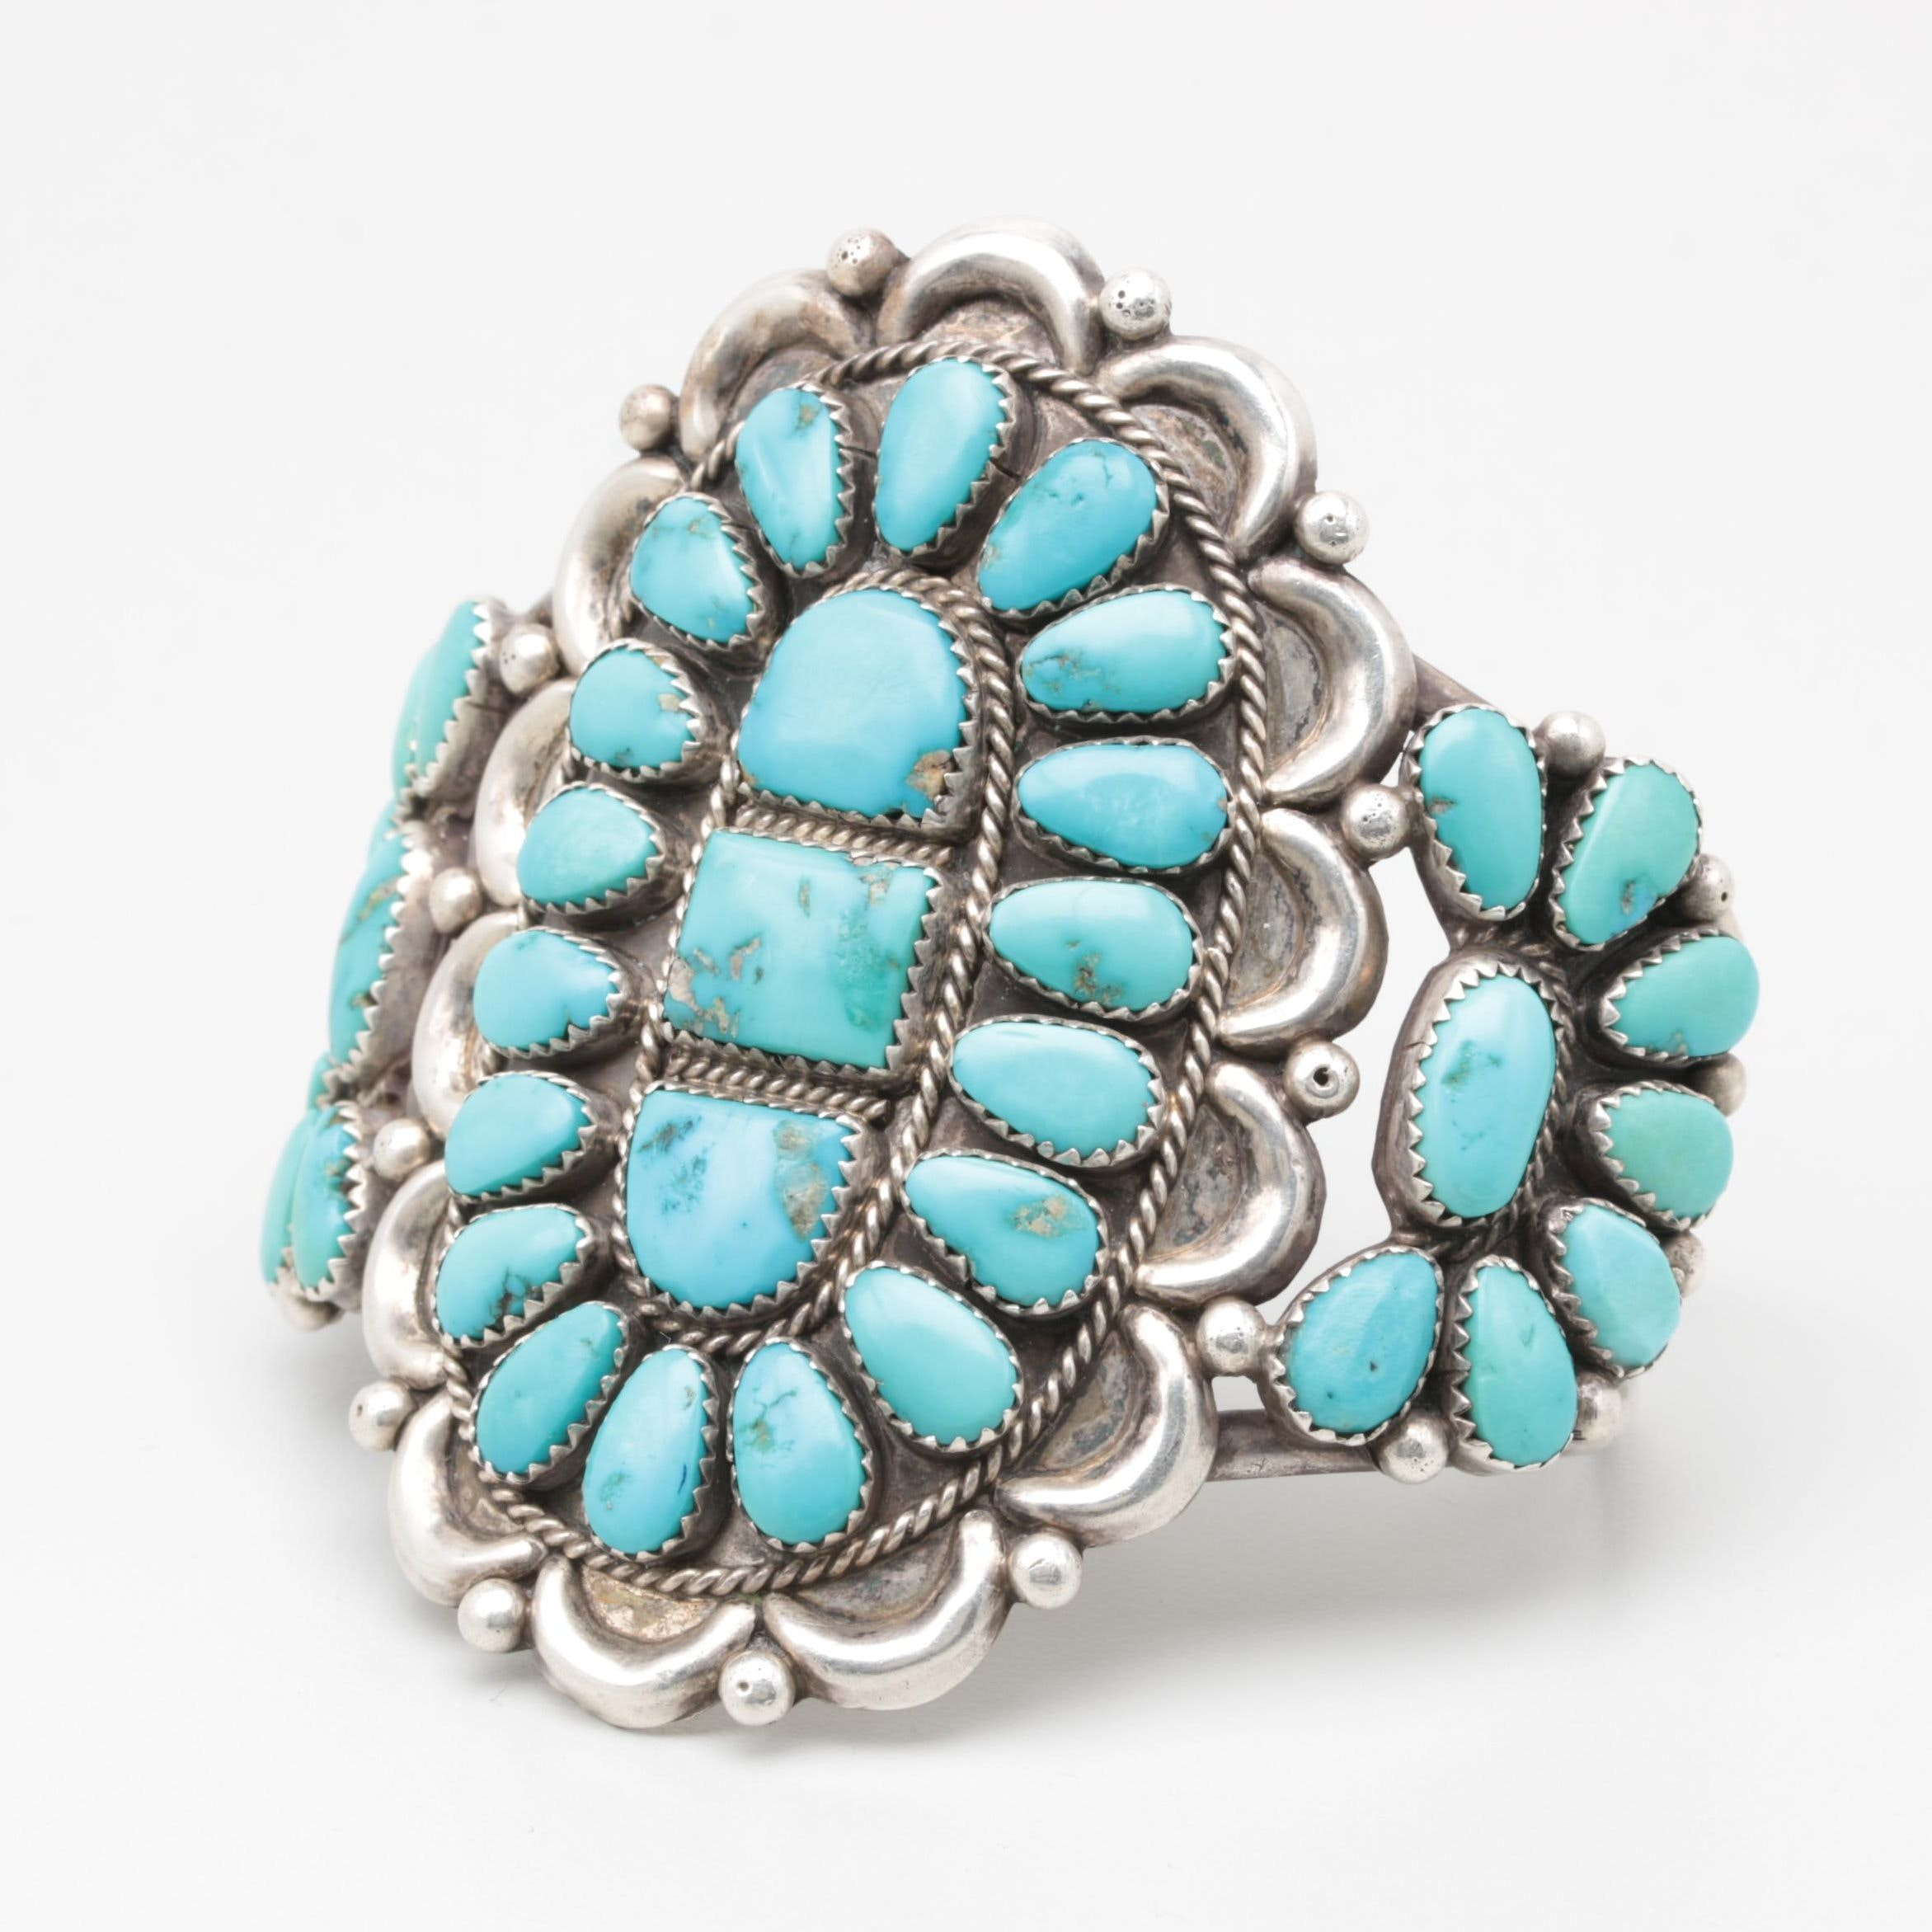 Justin and Esther Wilson Navajo Diné Sterling Silver Turquoise Cluster Cuff